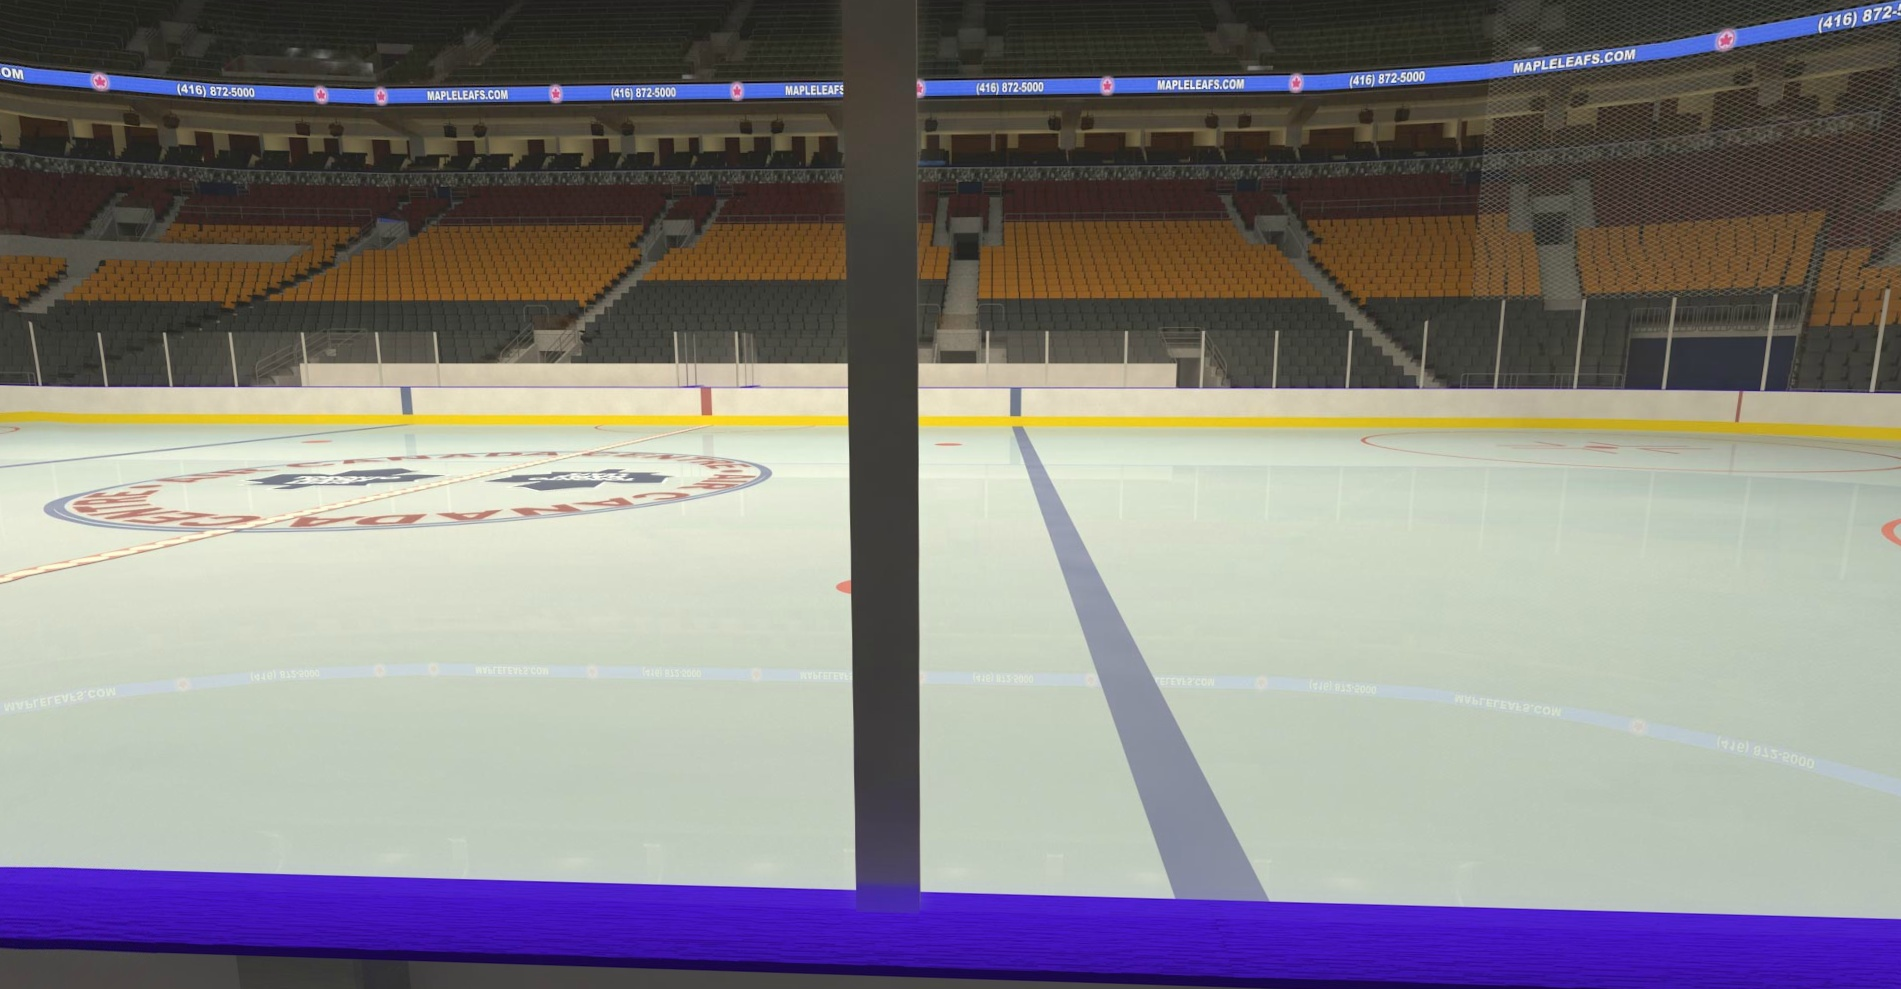 Sat, Mar 24, 2018 - Red Wings @ Leafs - Sec 107 Row 1 - Click Image to Close